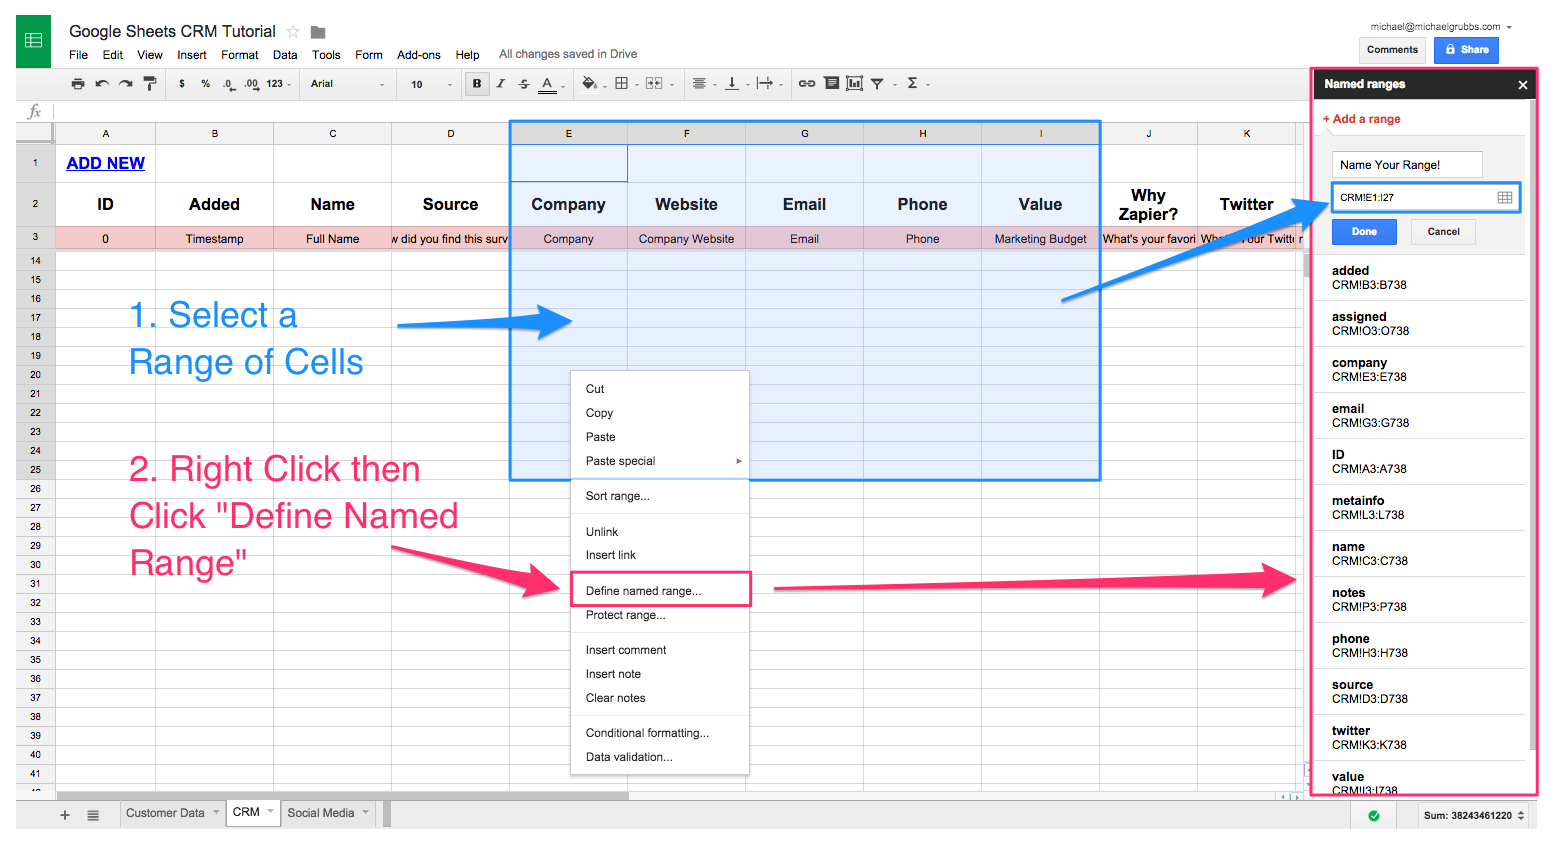 Crm Excel Template Spreadsheet With Spreadsheet Crm: How To Create A Customizable Crm With Google Sheets